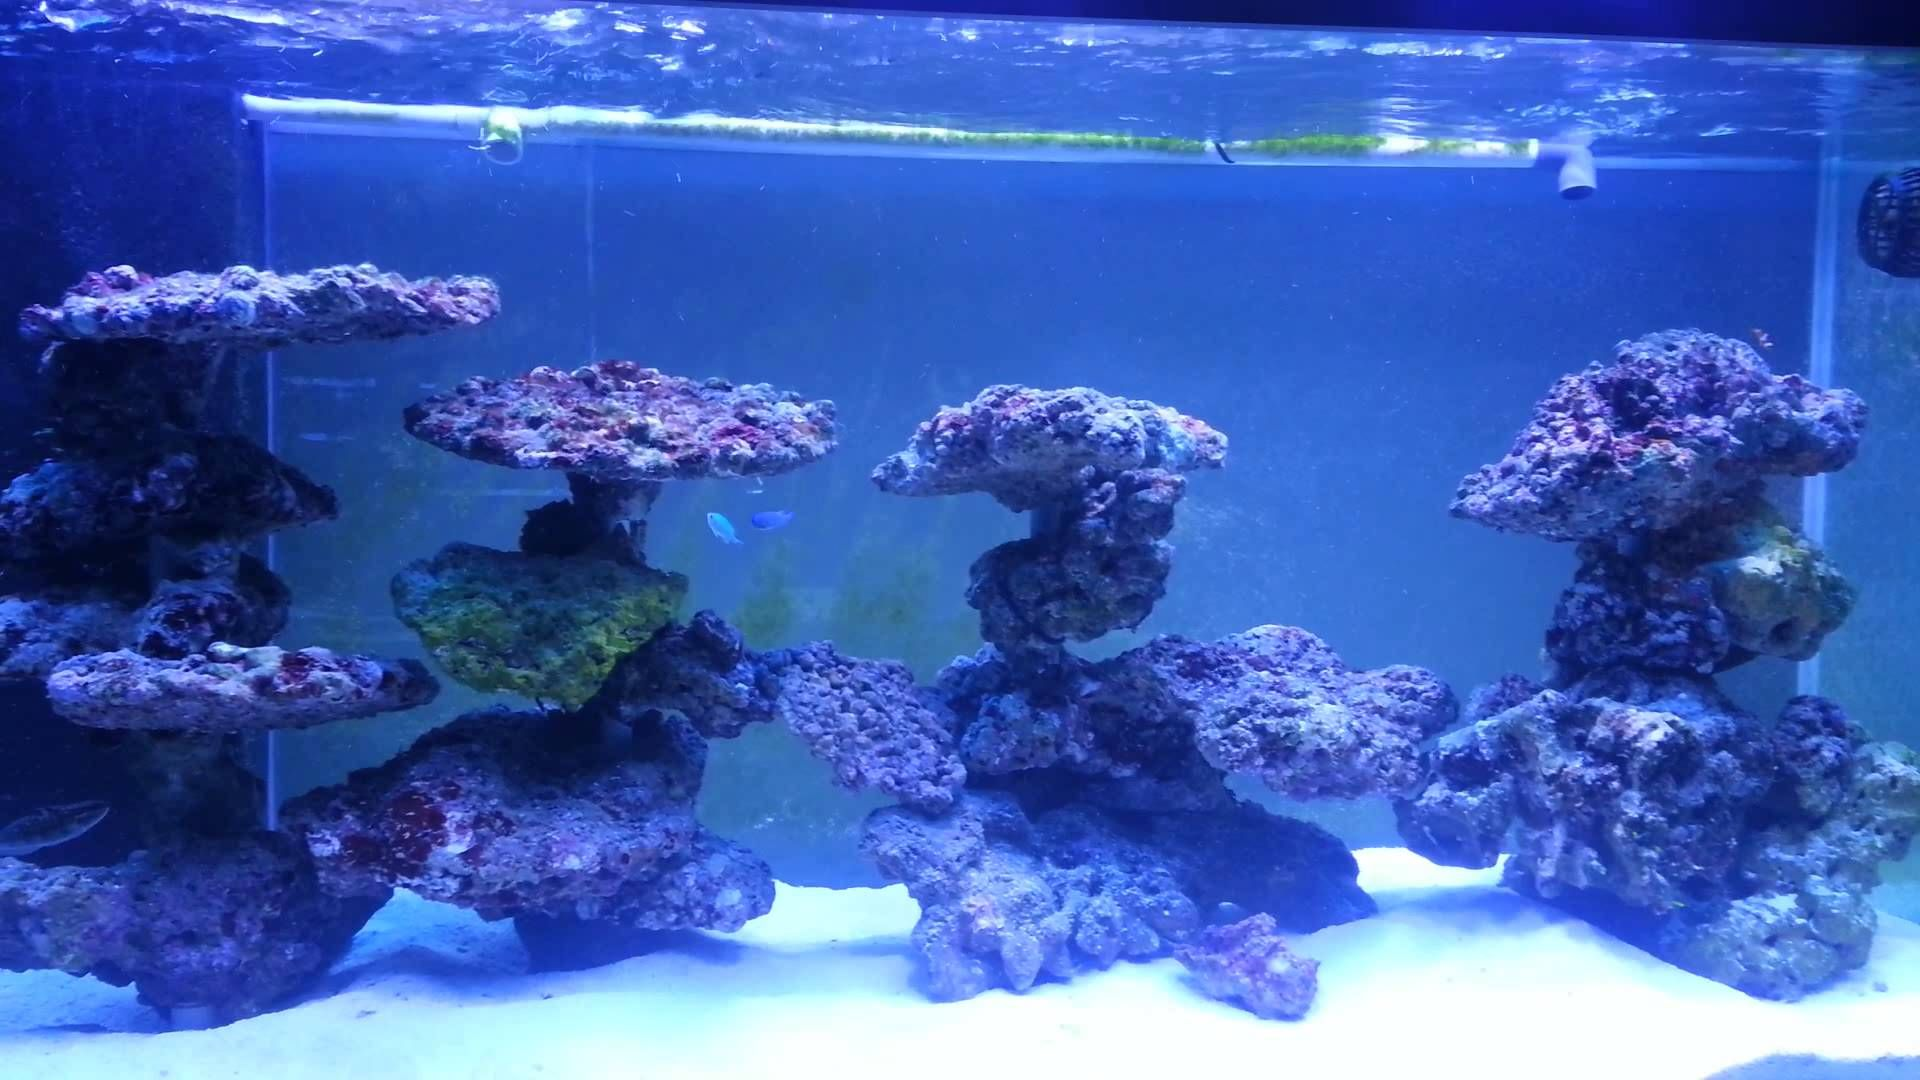 nano reef aquascapes - Google Search | Reef tank ...